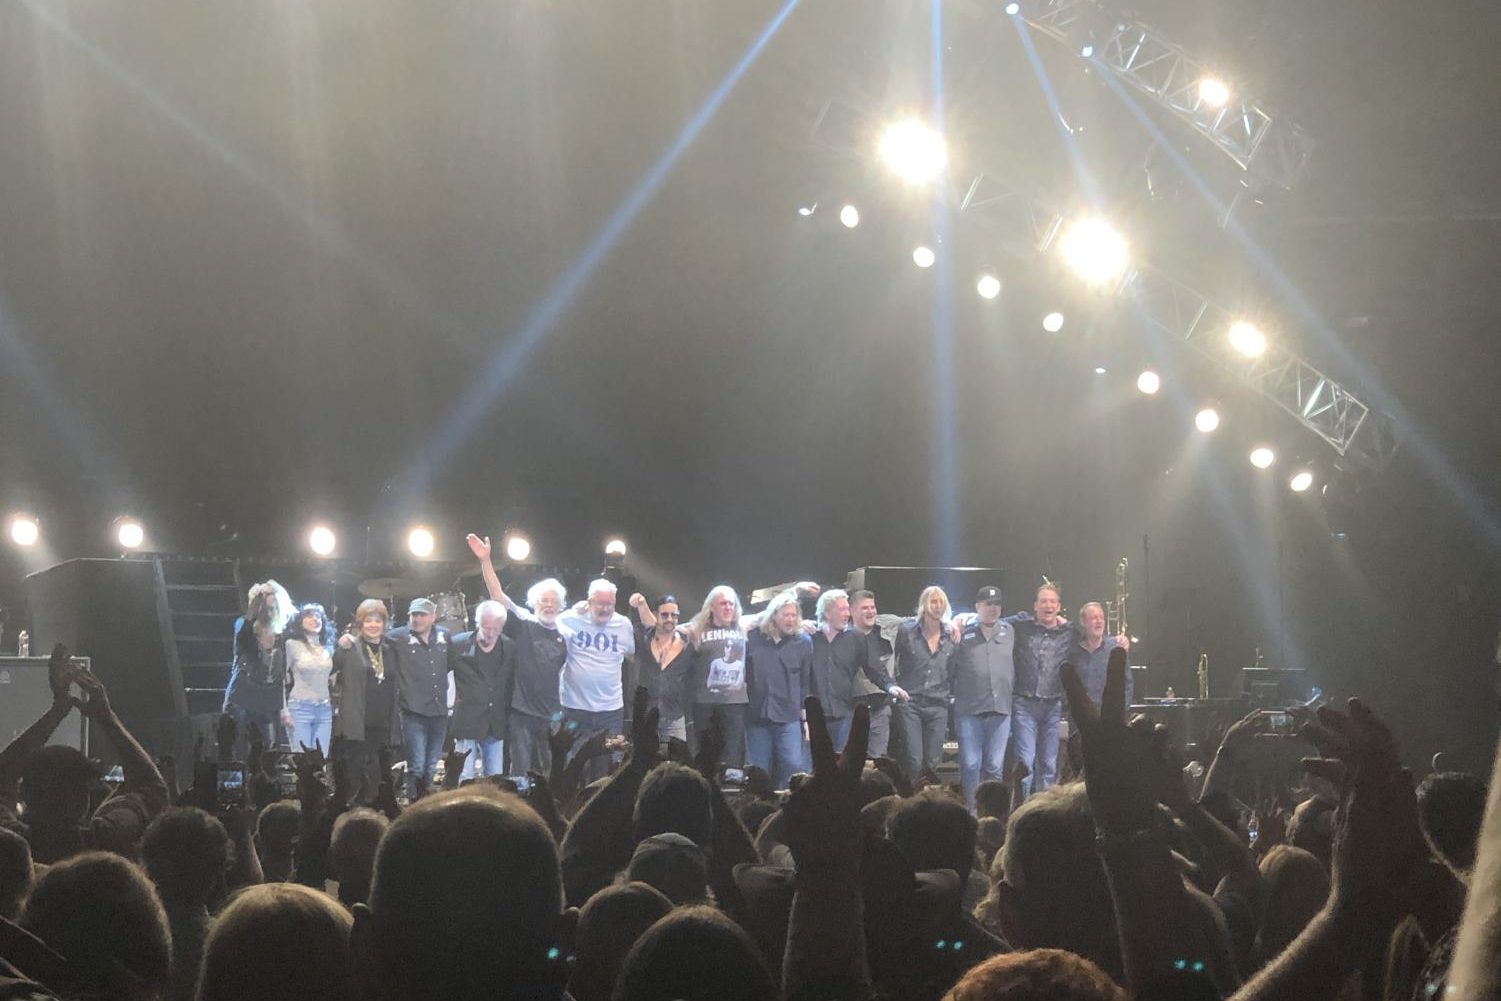 Bob Seger and the Silver Bullet band take a bow before playing an encore at the FedEx Forum.